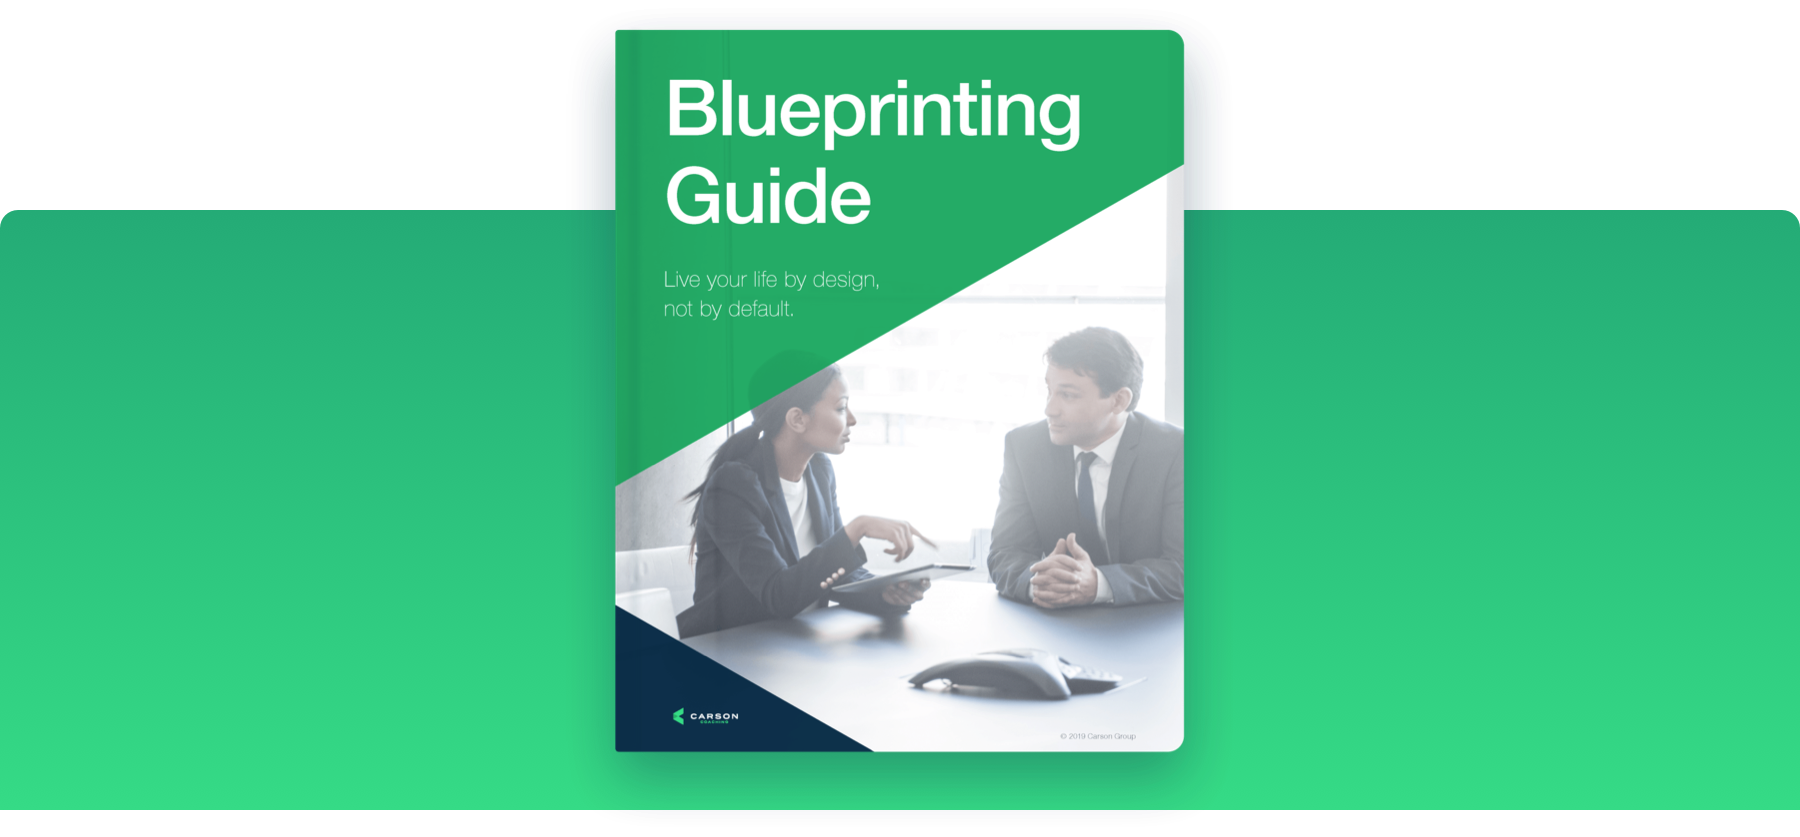 Blueprinting Guide